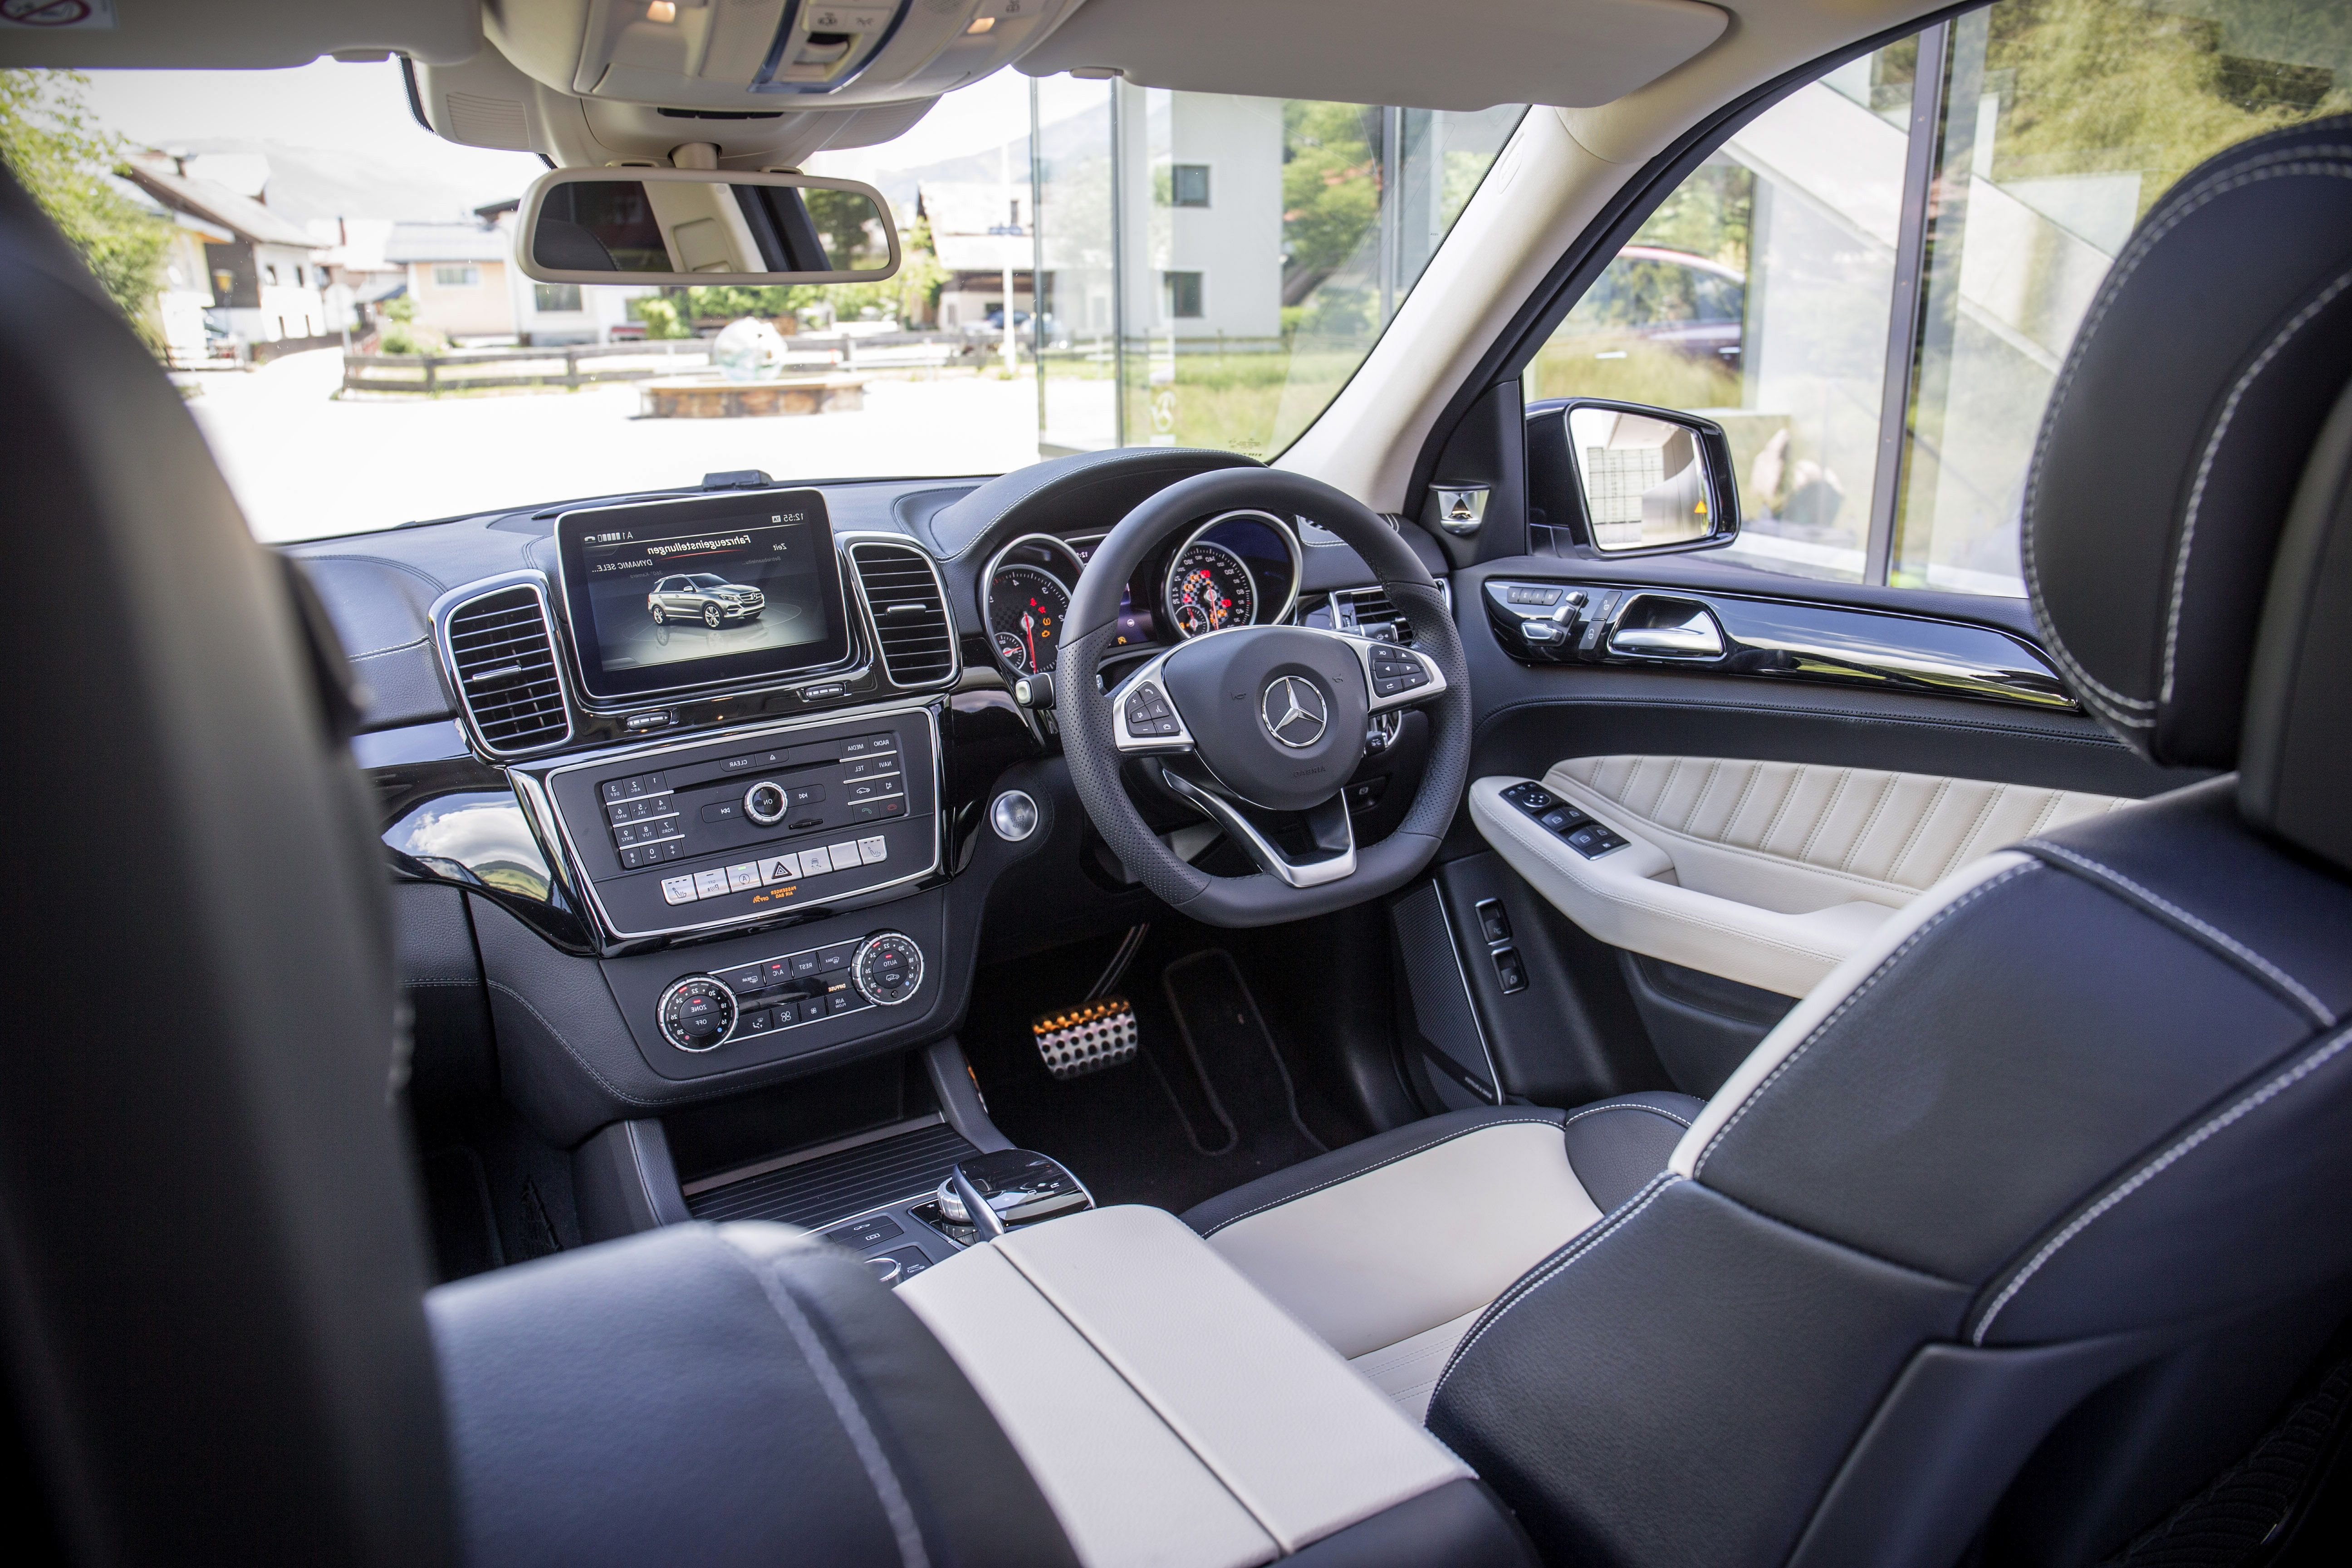 2019 Mercedes Benz GLE interior upgrade